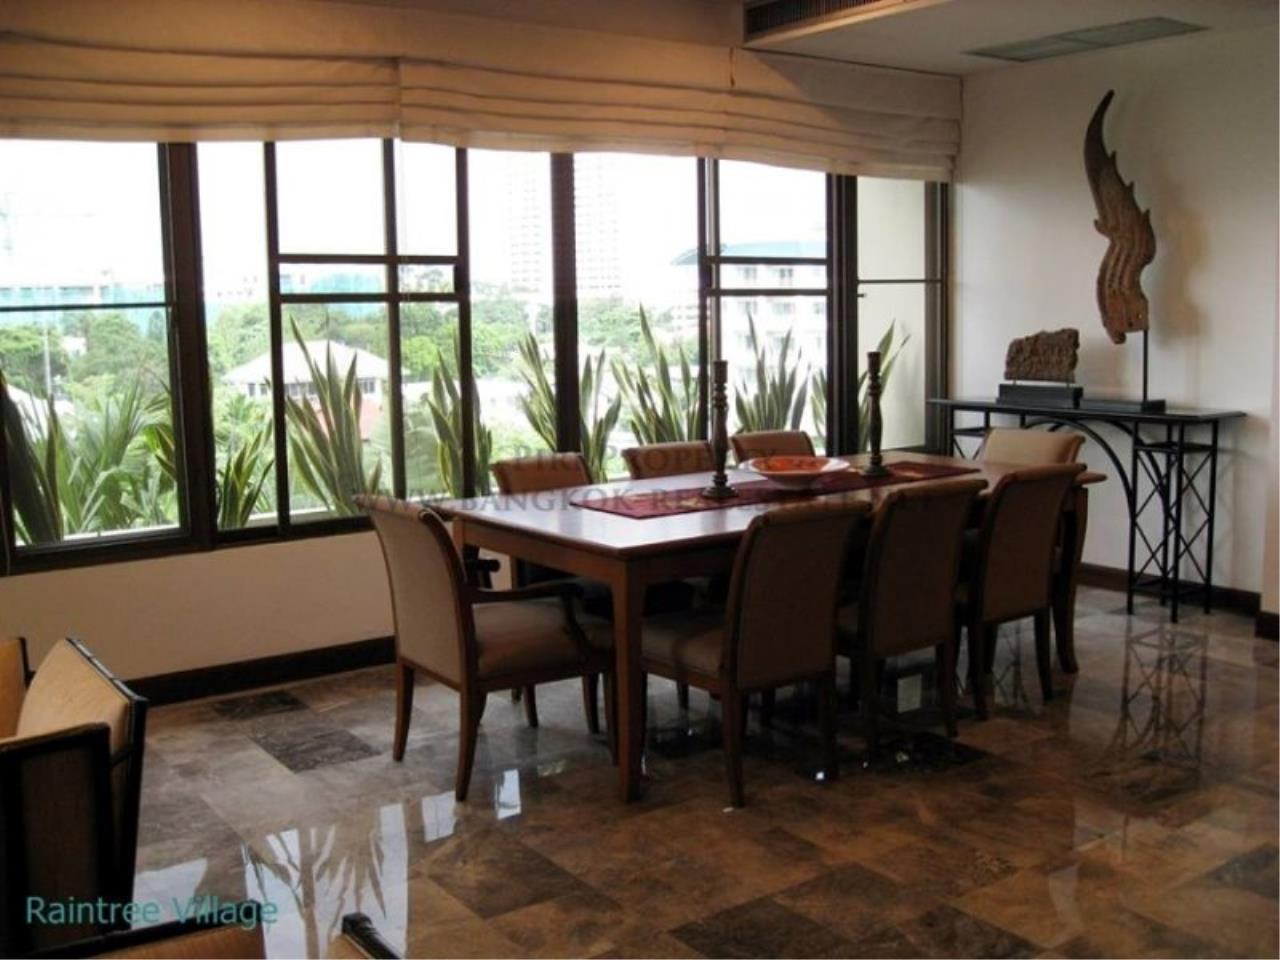 Piri Property Agency's Spacious Family Apartment in Phrom Phong for Rent - 3 Bed 1